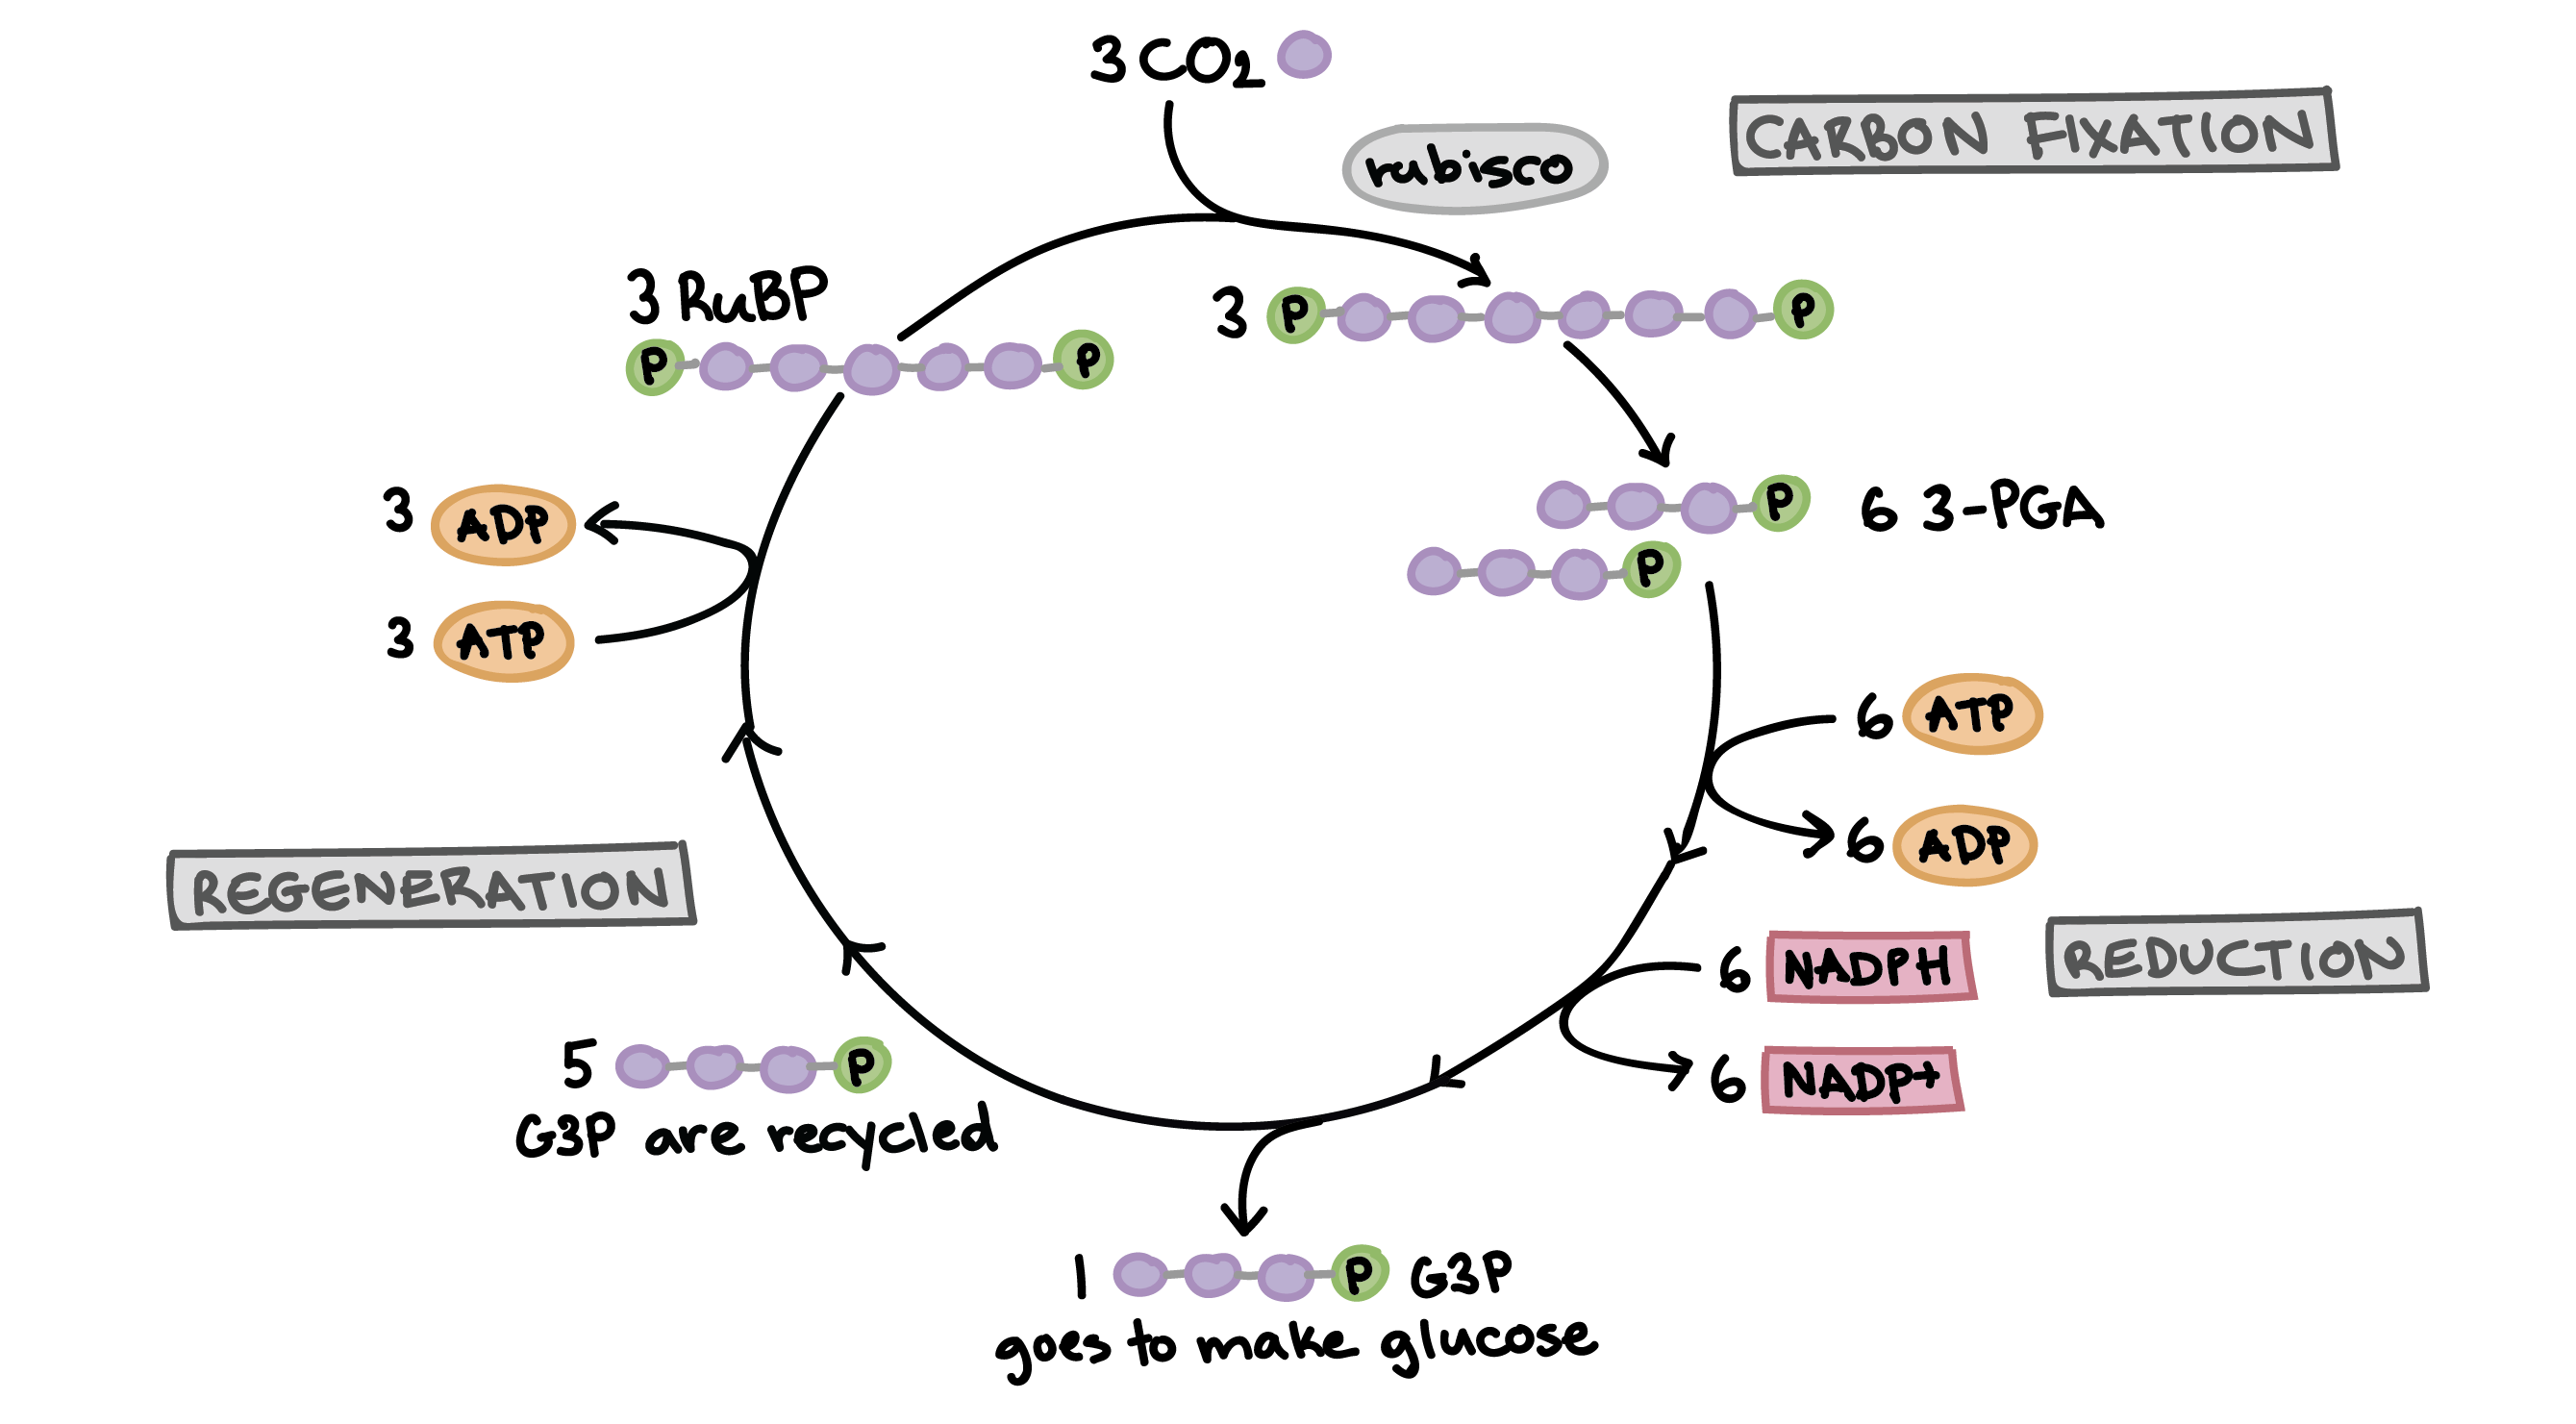 adp molecule diagram labeled wiring for motorcycle alarm energy life